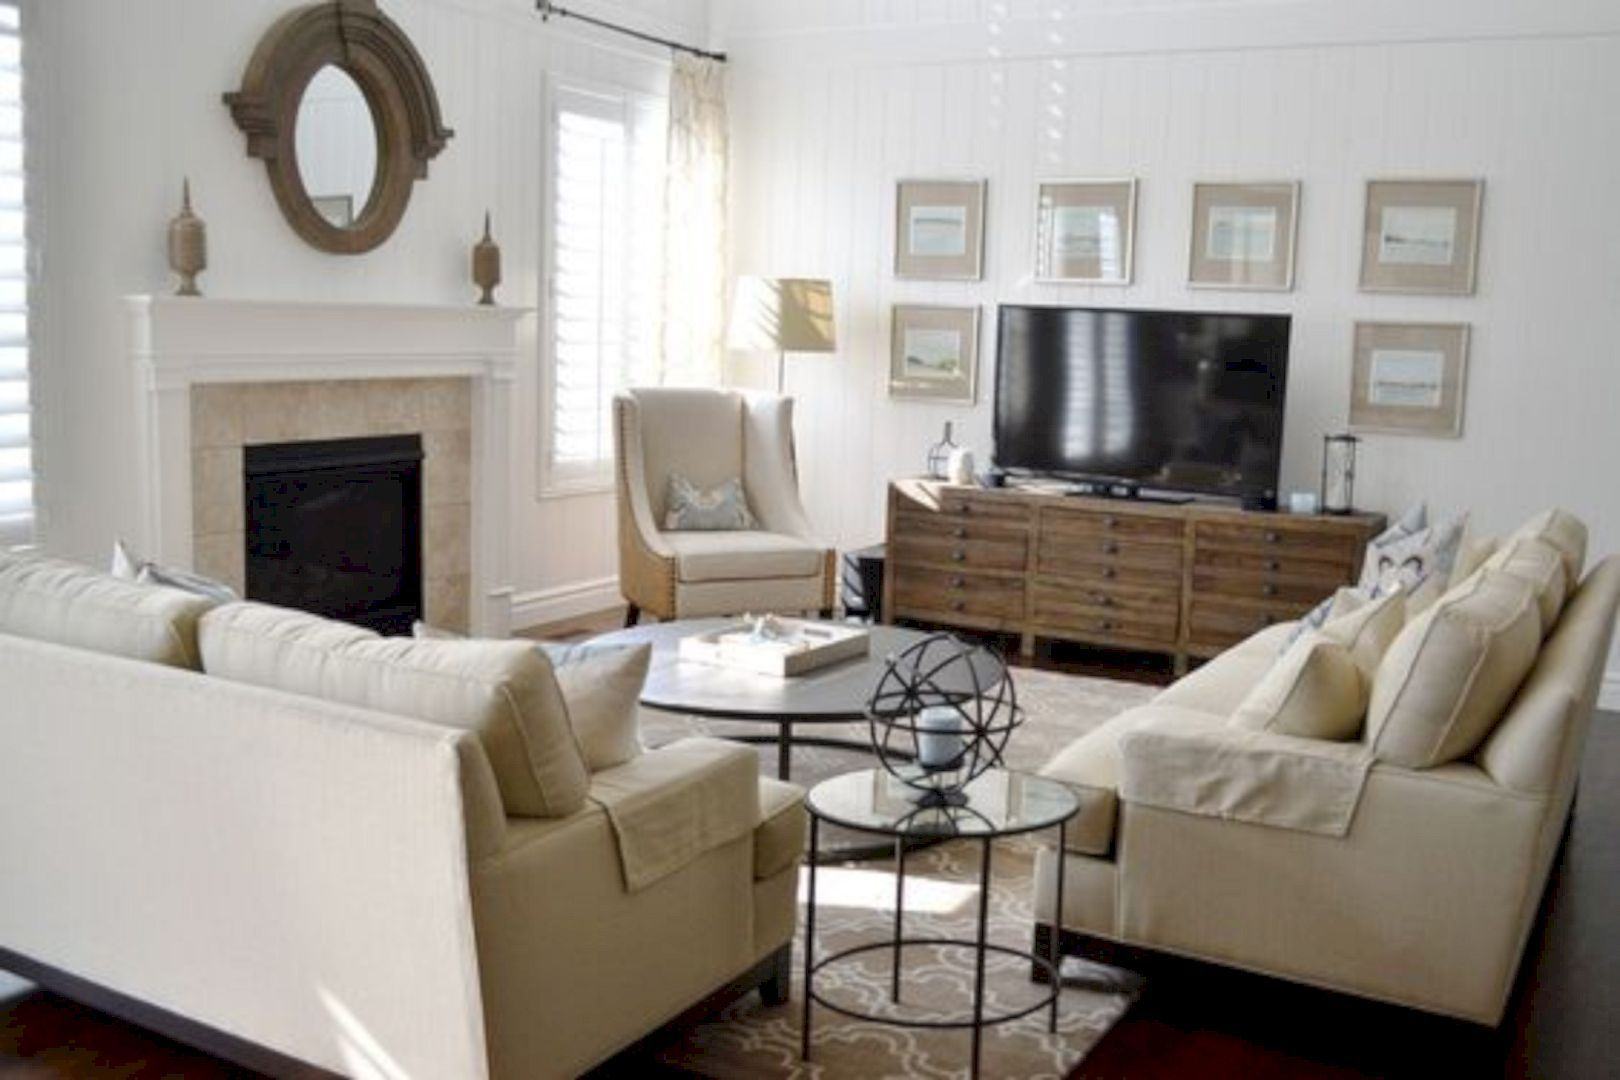 15 Living Room Furniture Layout Ideas With Fireplace To Inspire